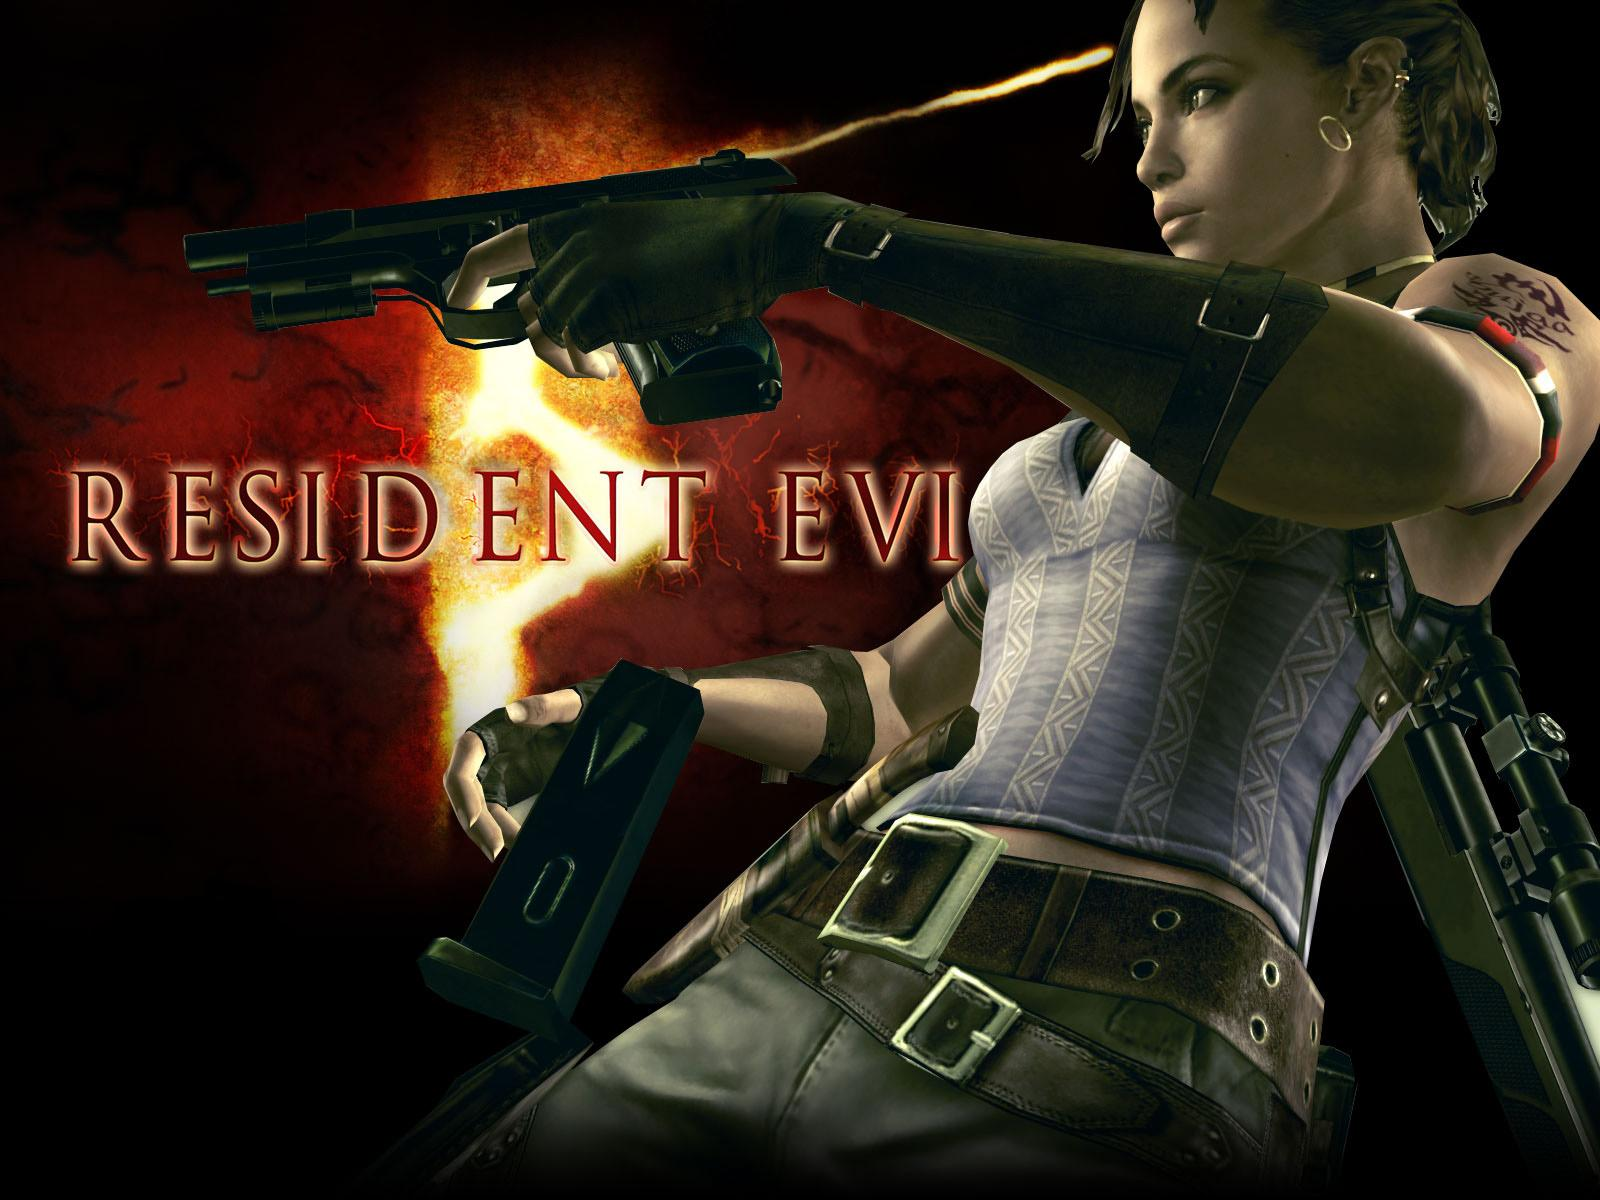 Resident evil 5 nuds girls pic fucking photos